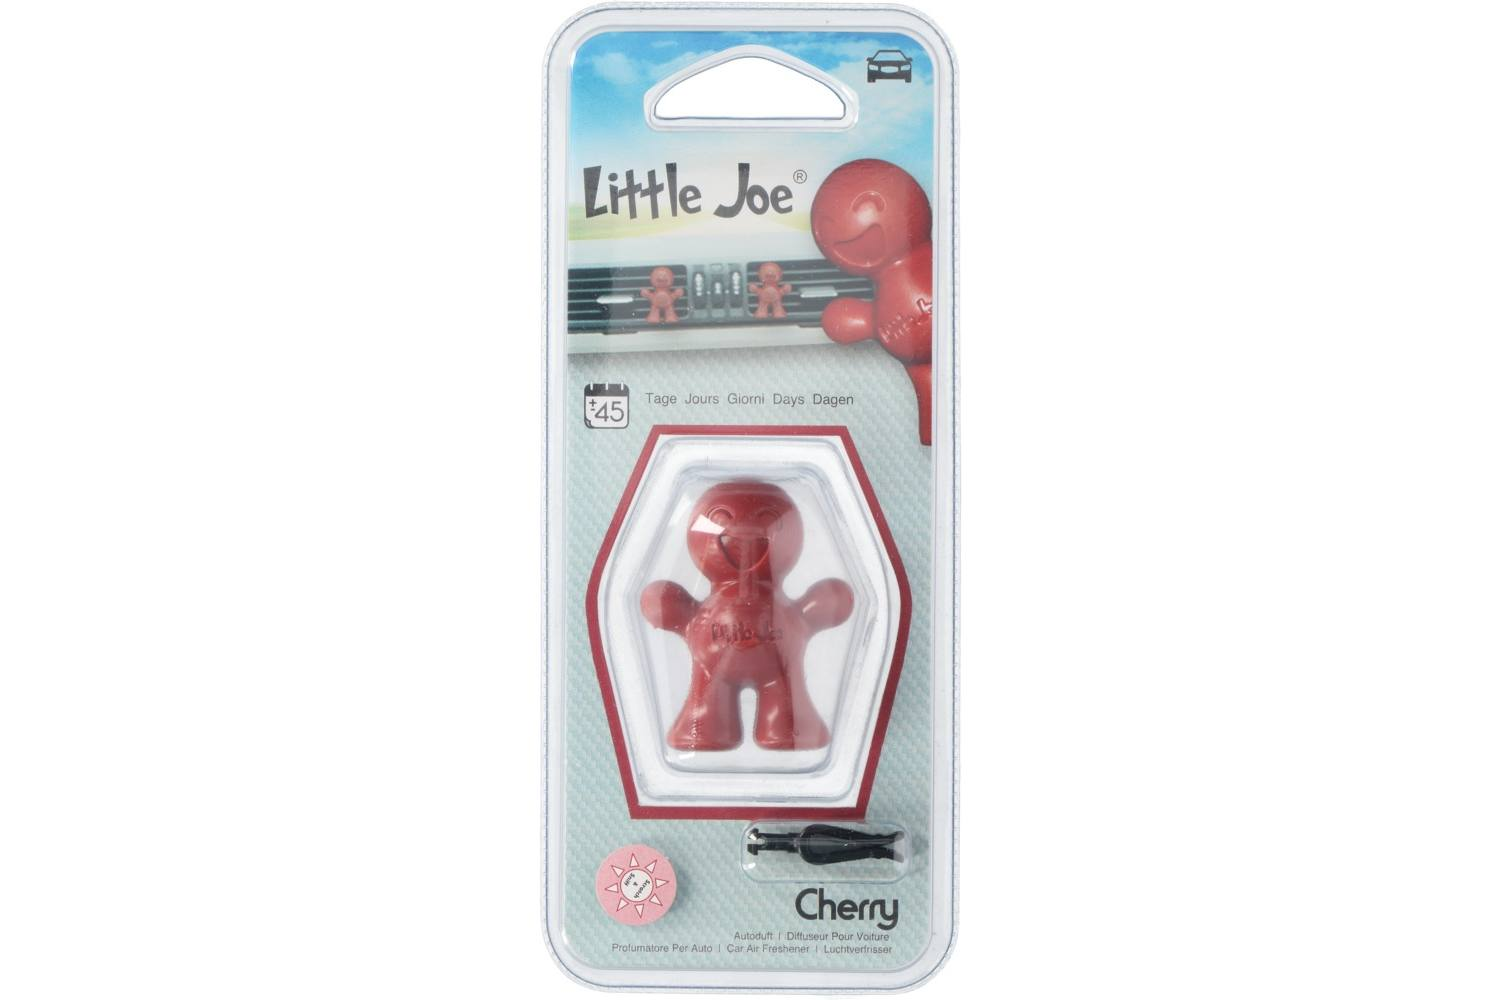 Air freshener, Little Joe, cherry 1